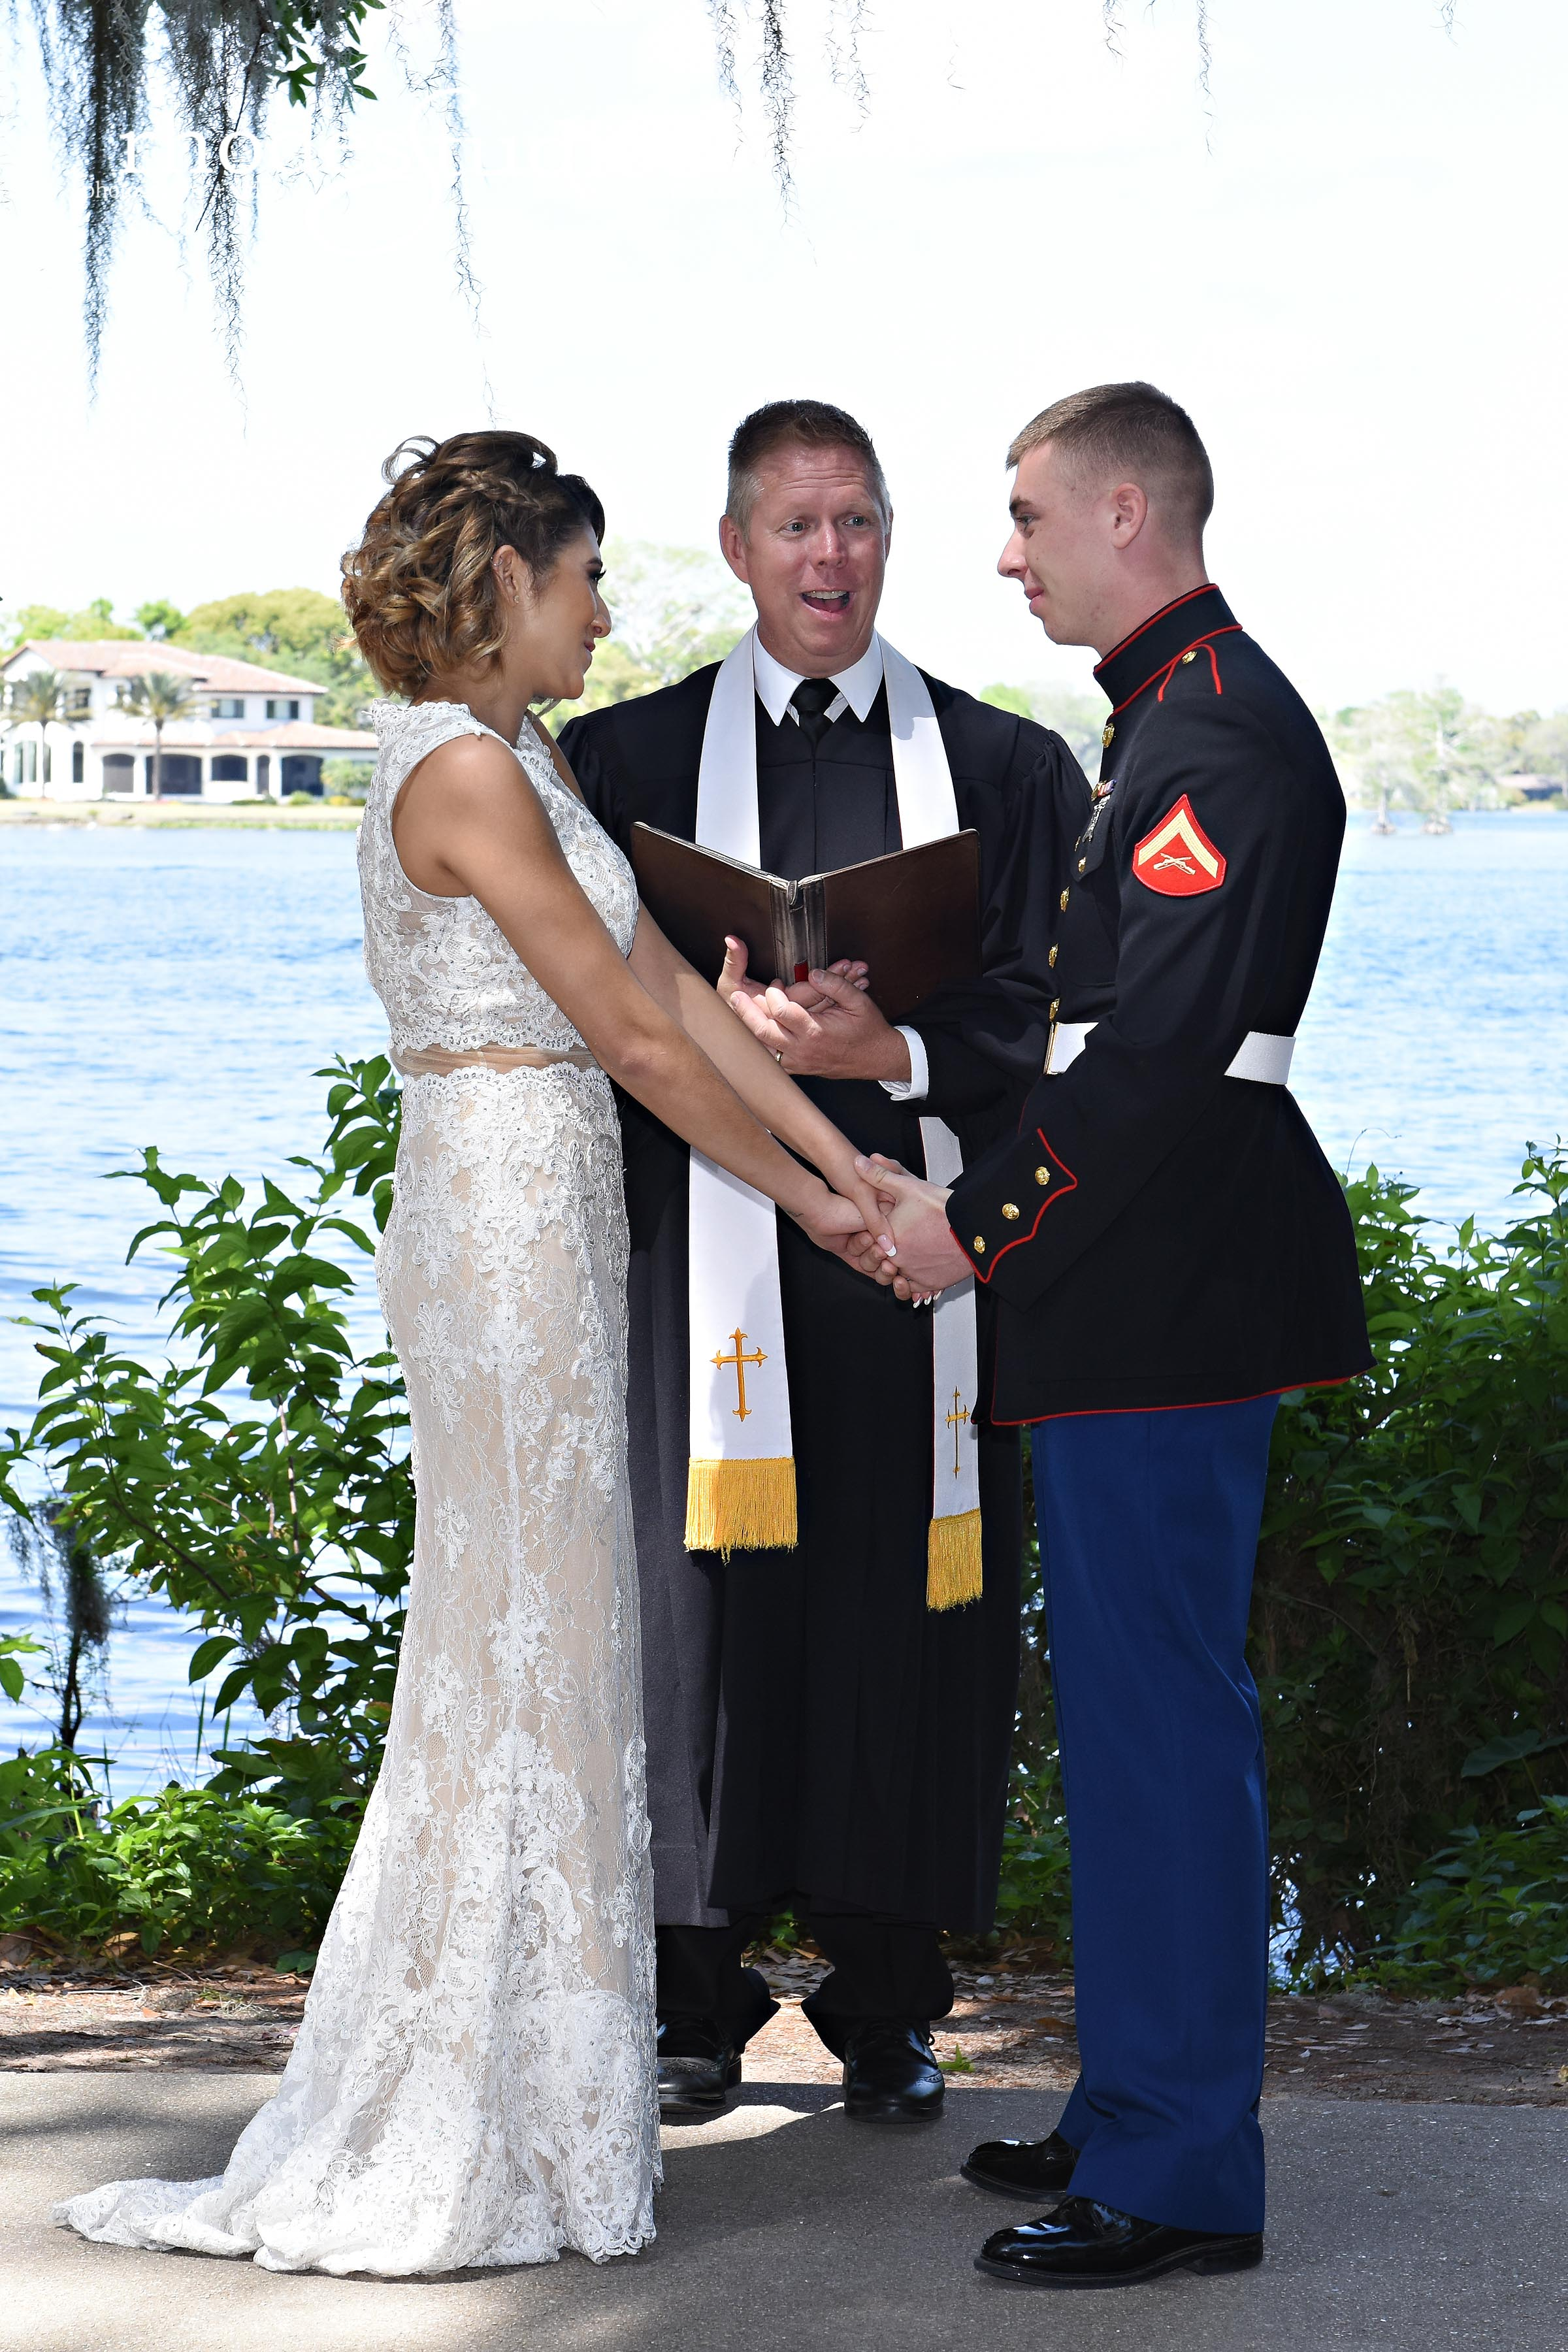 How to pick the right officiant for your wedding